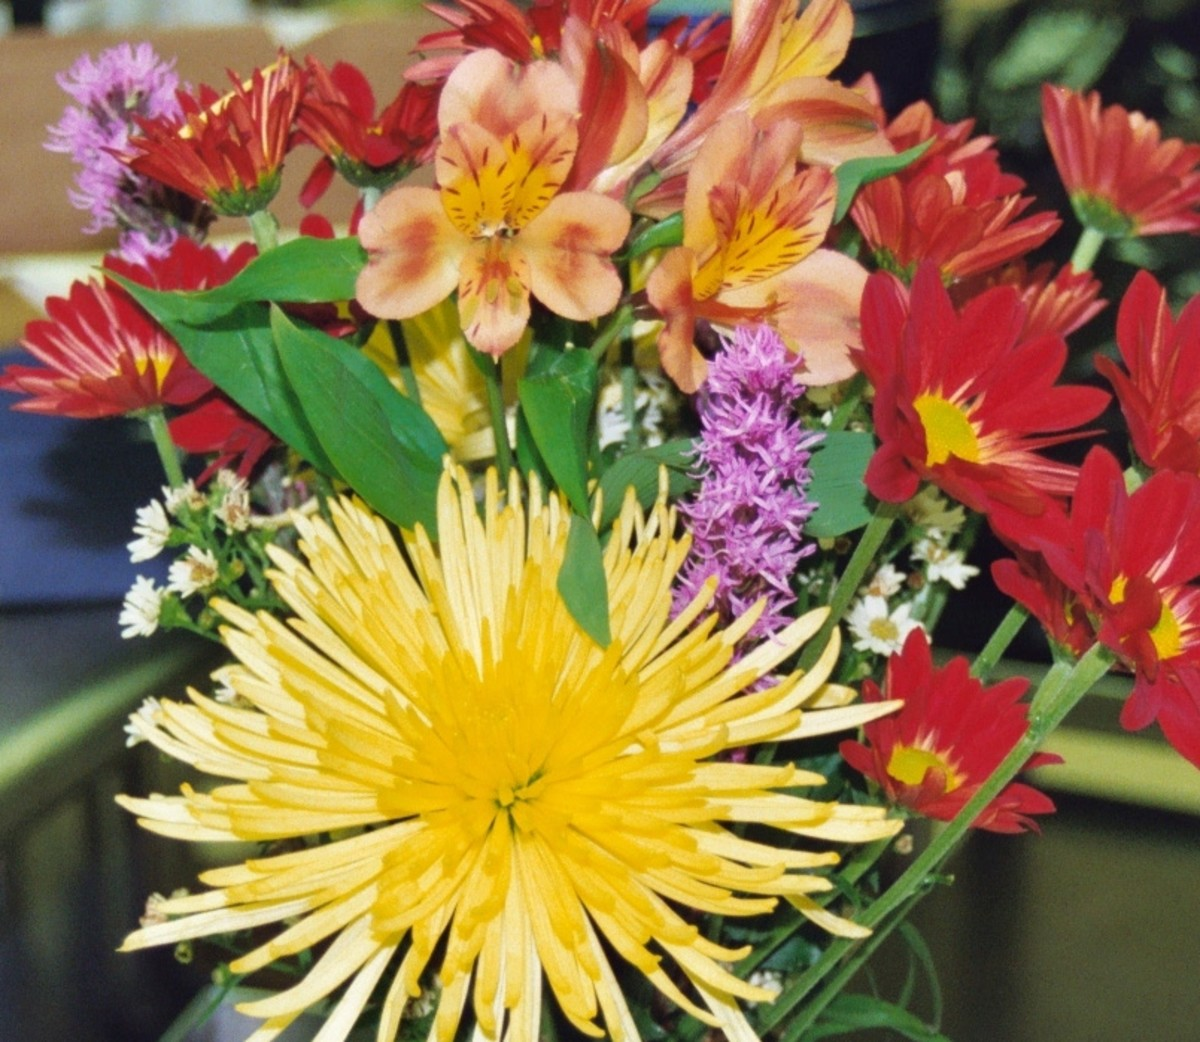 A colorful arrangement brings sunshine to the life of the woman who celebrates her special day.